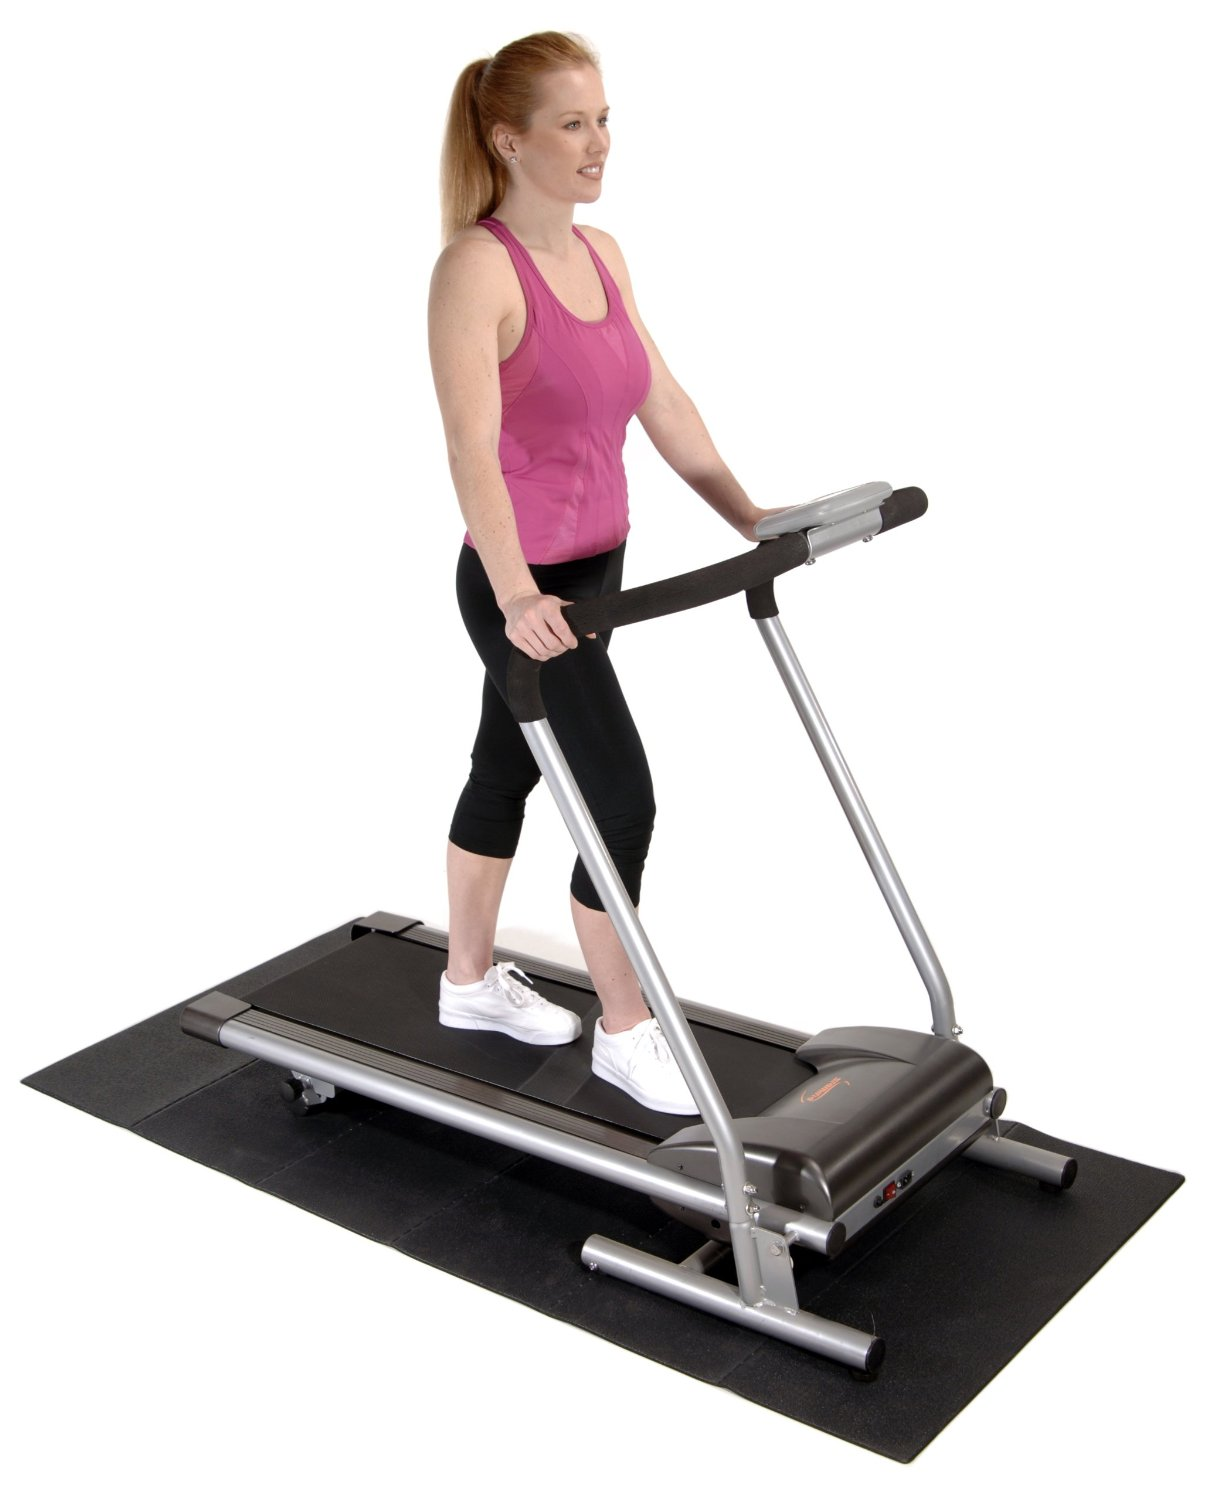 Home Exercise Equipment Small Space: Best Small And Compact Treadmills 2016